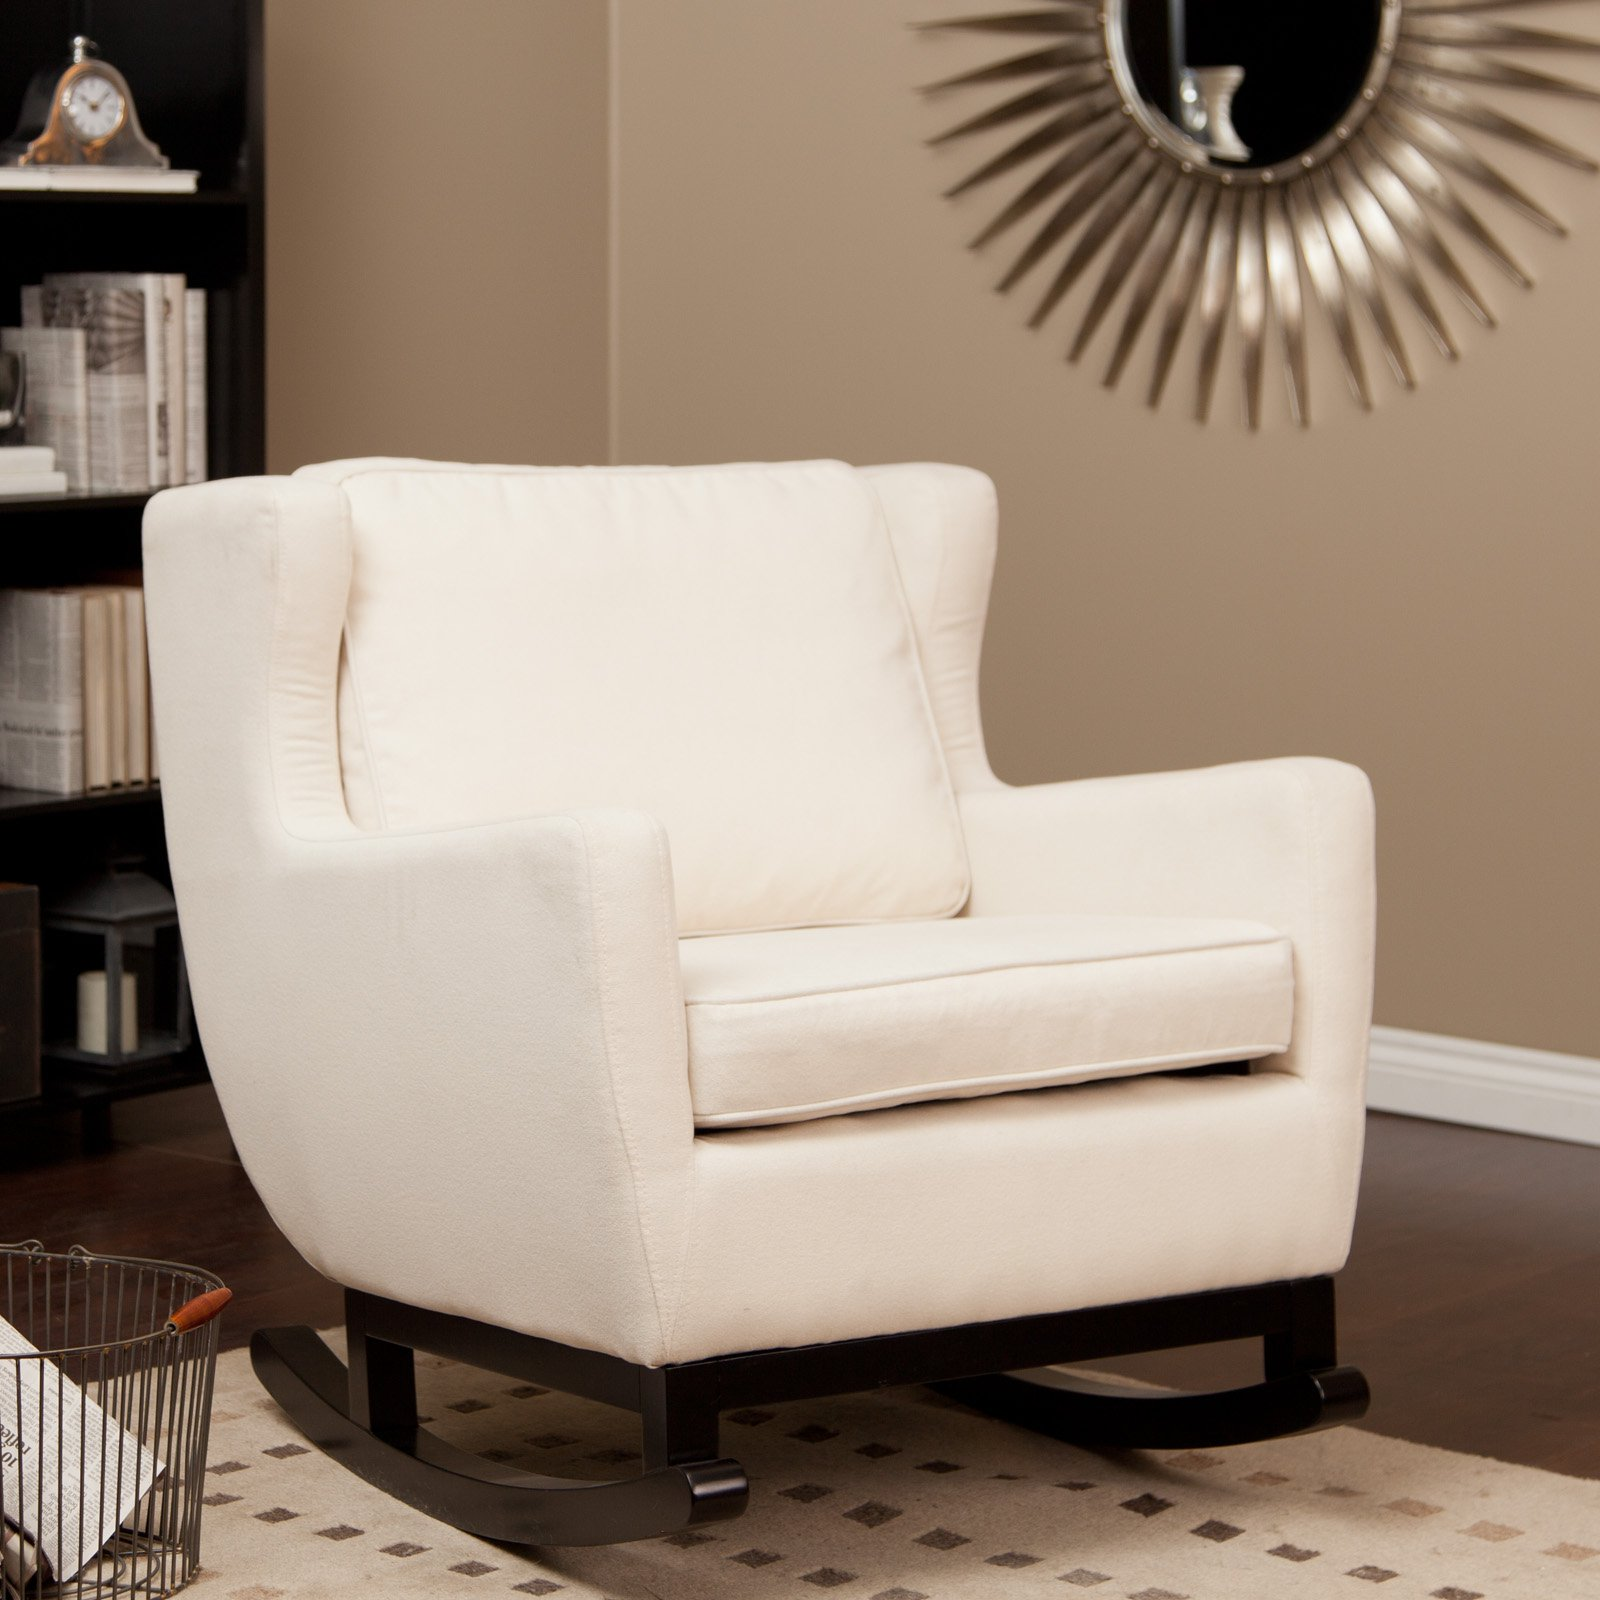 hg cy fabric living chairs accent yellow citrine linen sofa room chair livings single arm upholstered itm